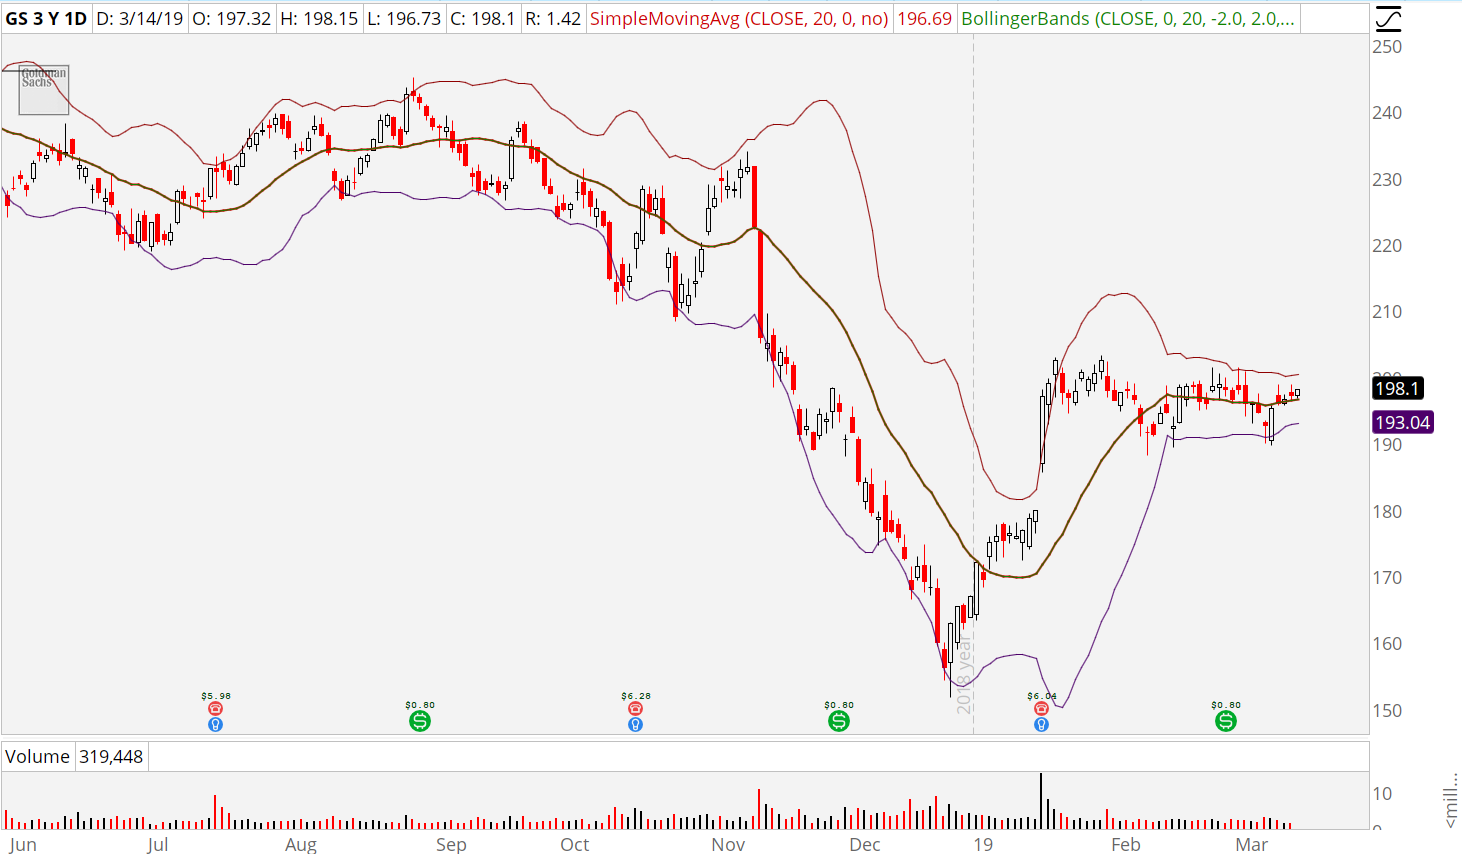 3 Coiled Spring Stocks Ready to Break Out (AMZN NFLX GE